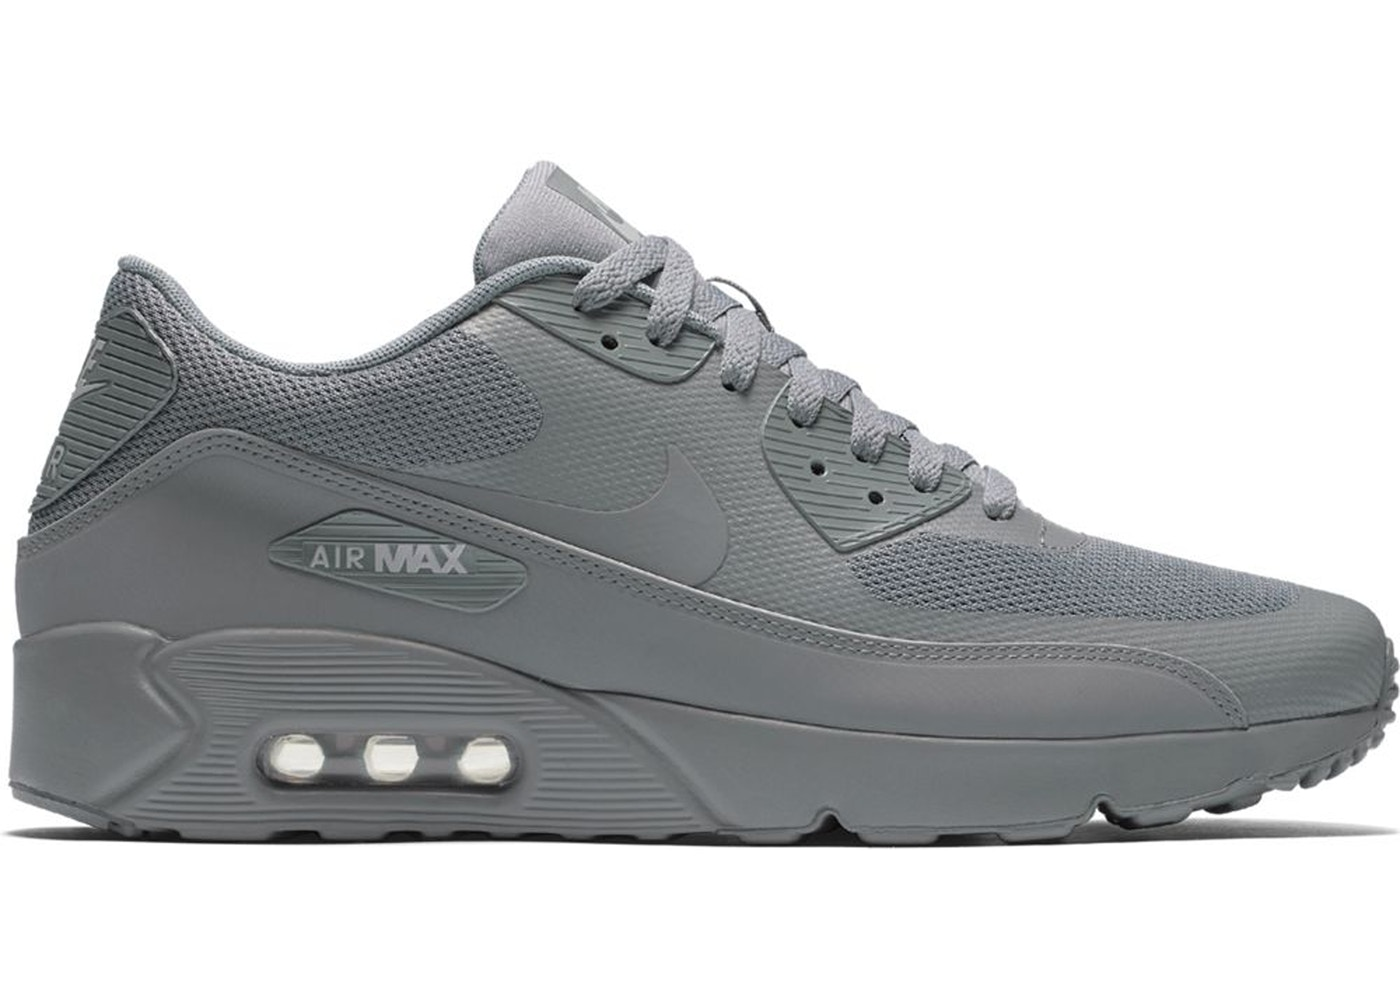 timeless design 8e0db 5b2d6 Air Max 90 Ultra 2.0 Cool Grey